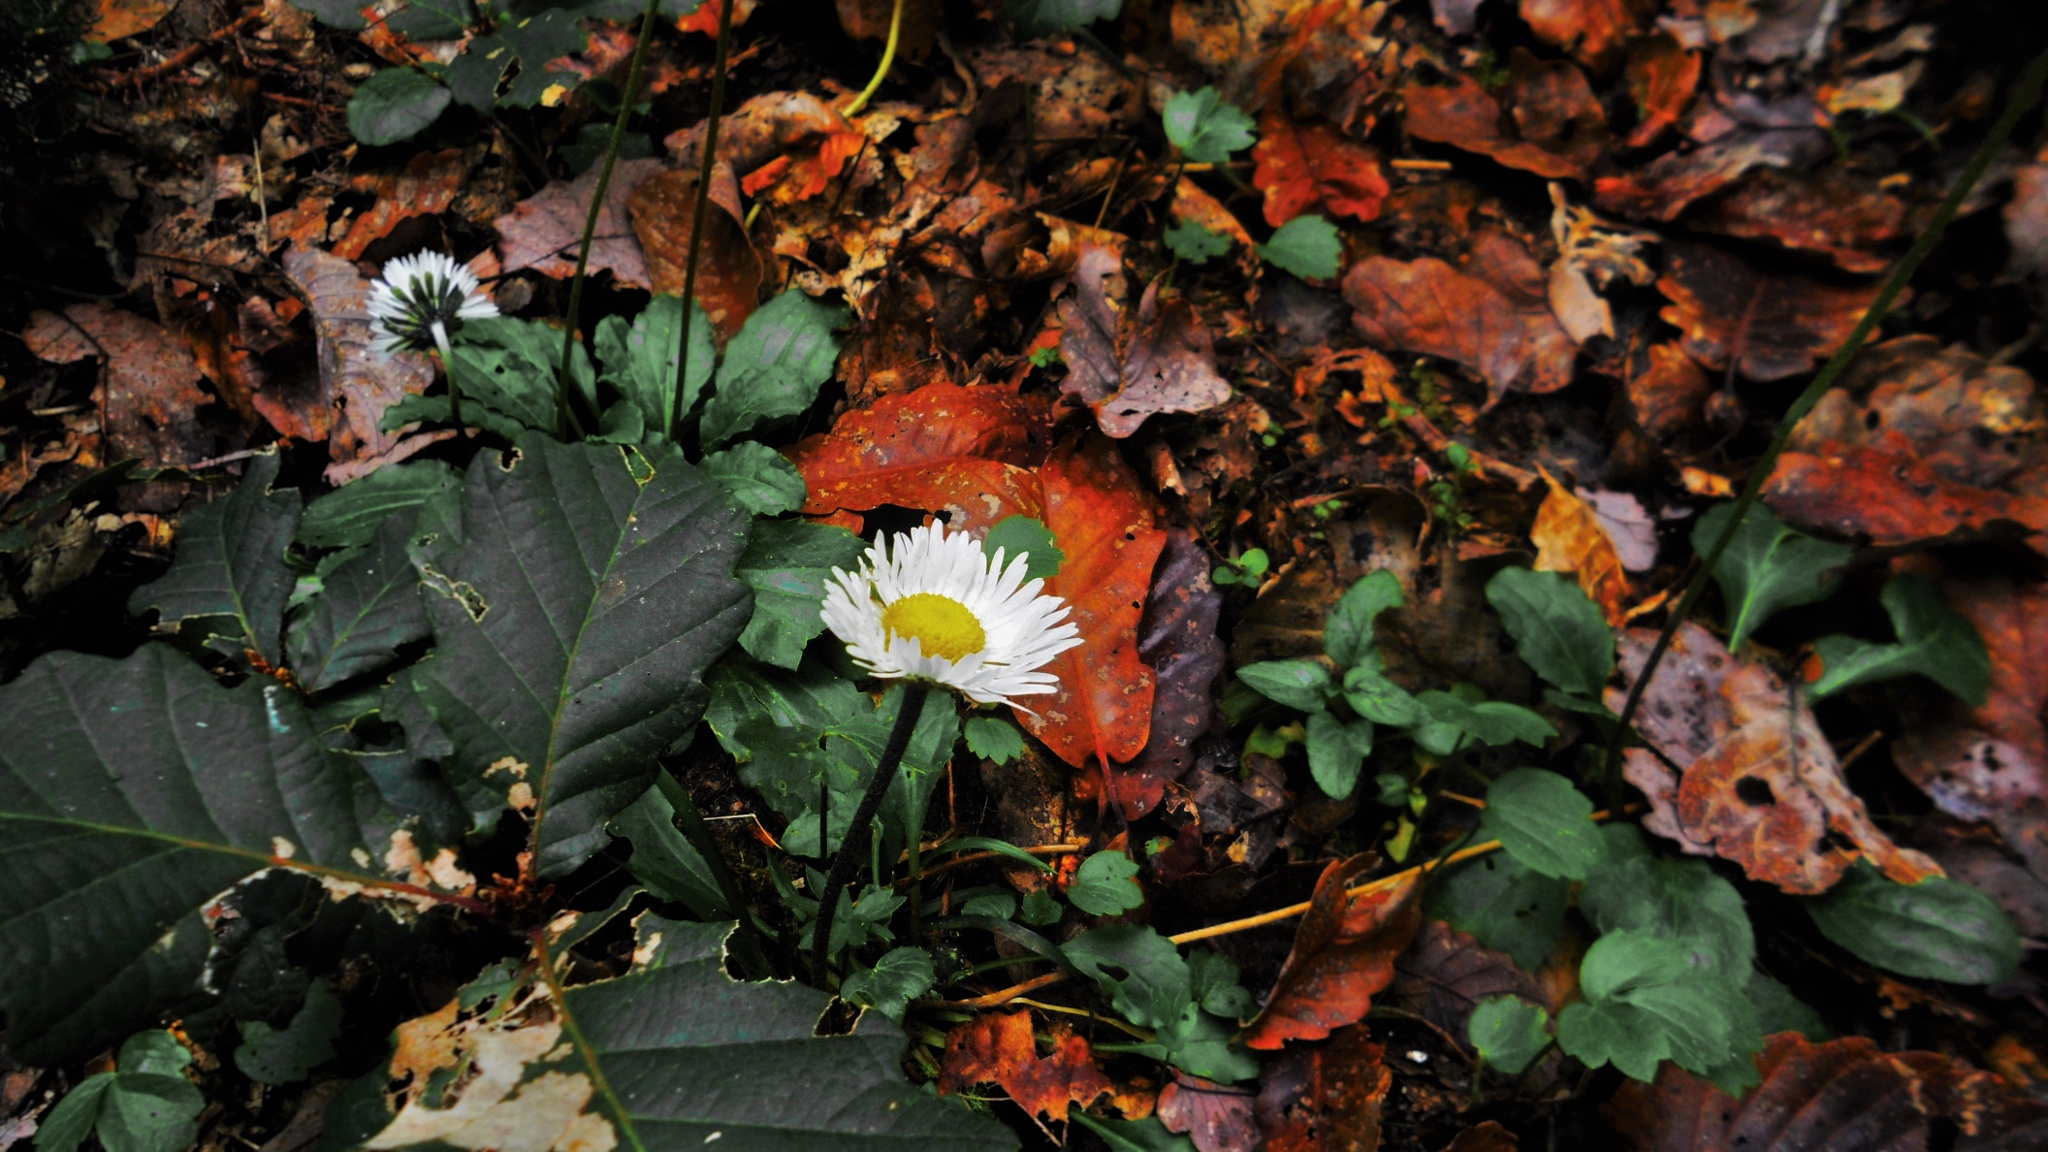 Margerita and the leaves  by BelgaTarkhani